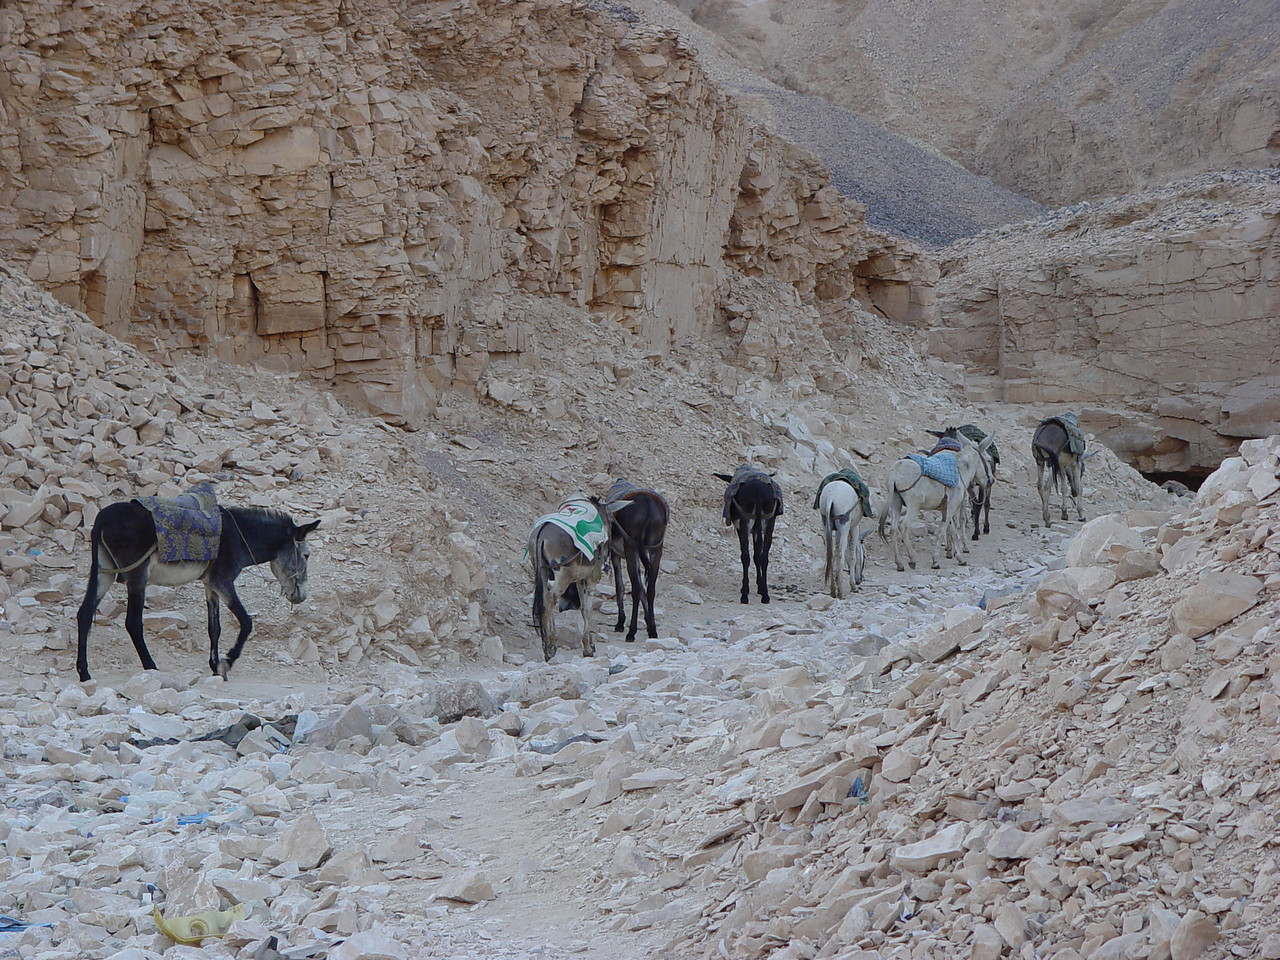 b) We leave our donkeys here and go off to explore some tombs.